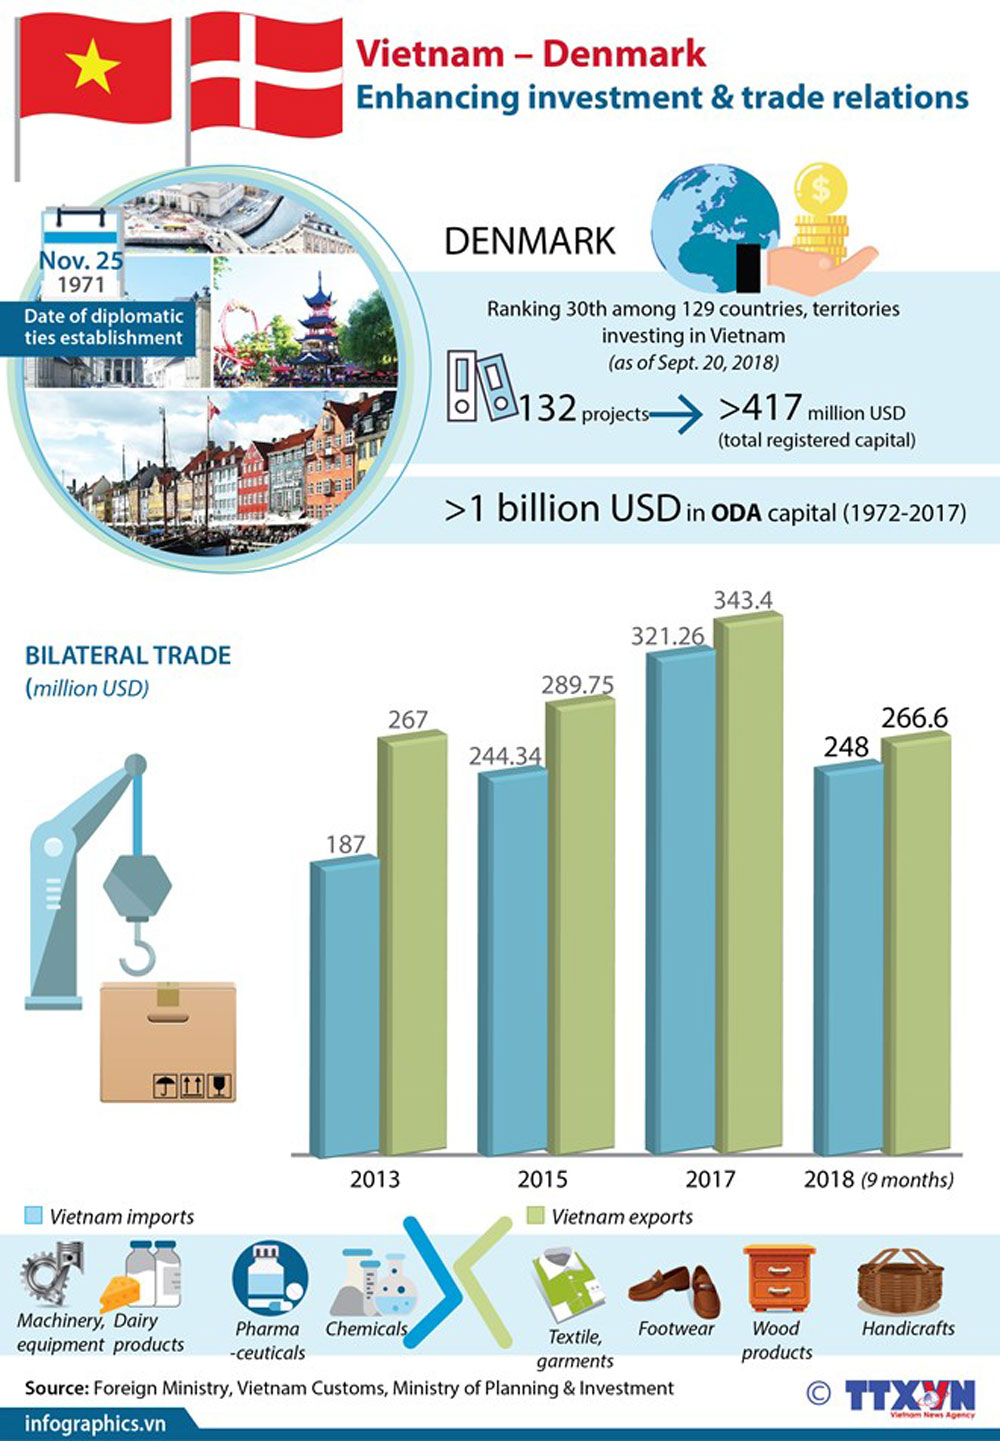 Vietnam – Denmark, investment and trade relations, bilateral trade, diplomatic ties, Vietnam imports